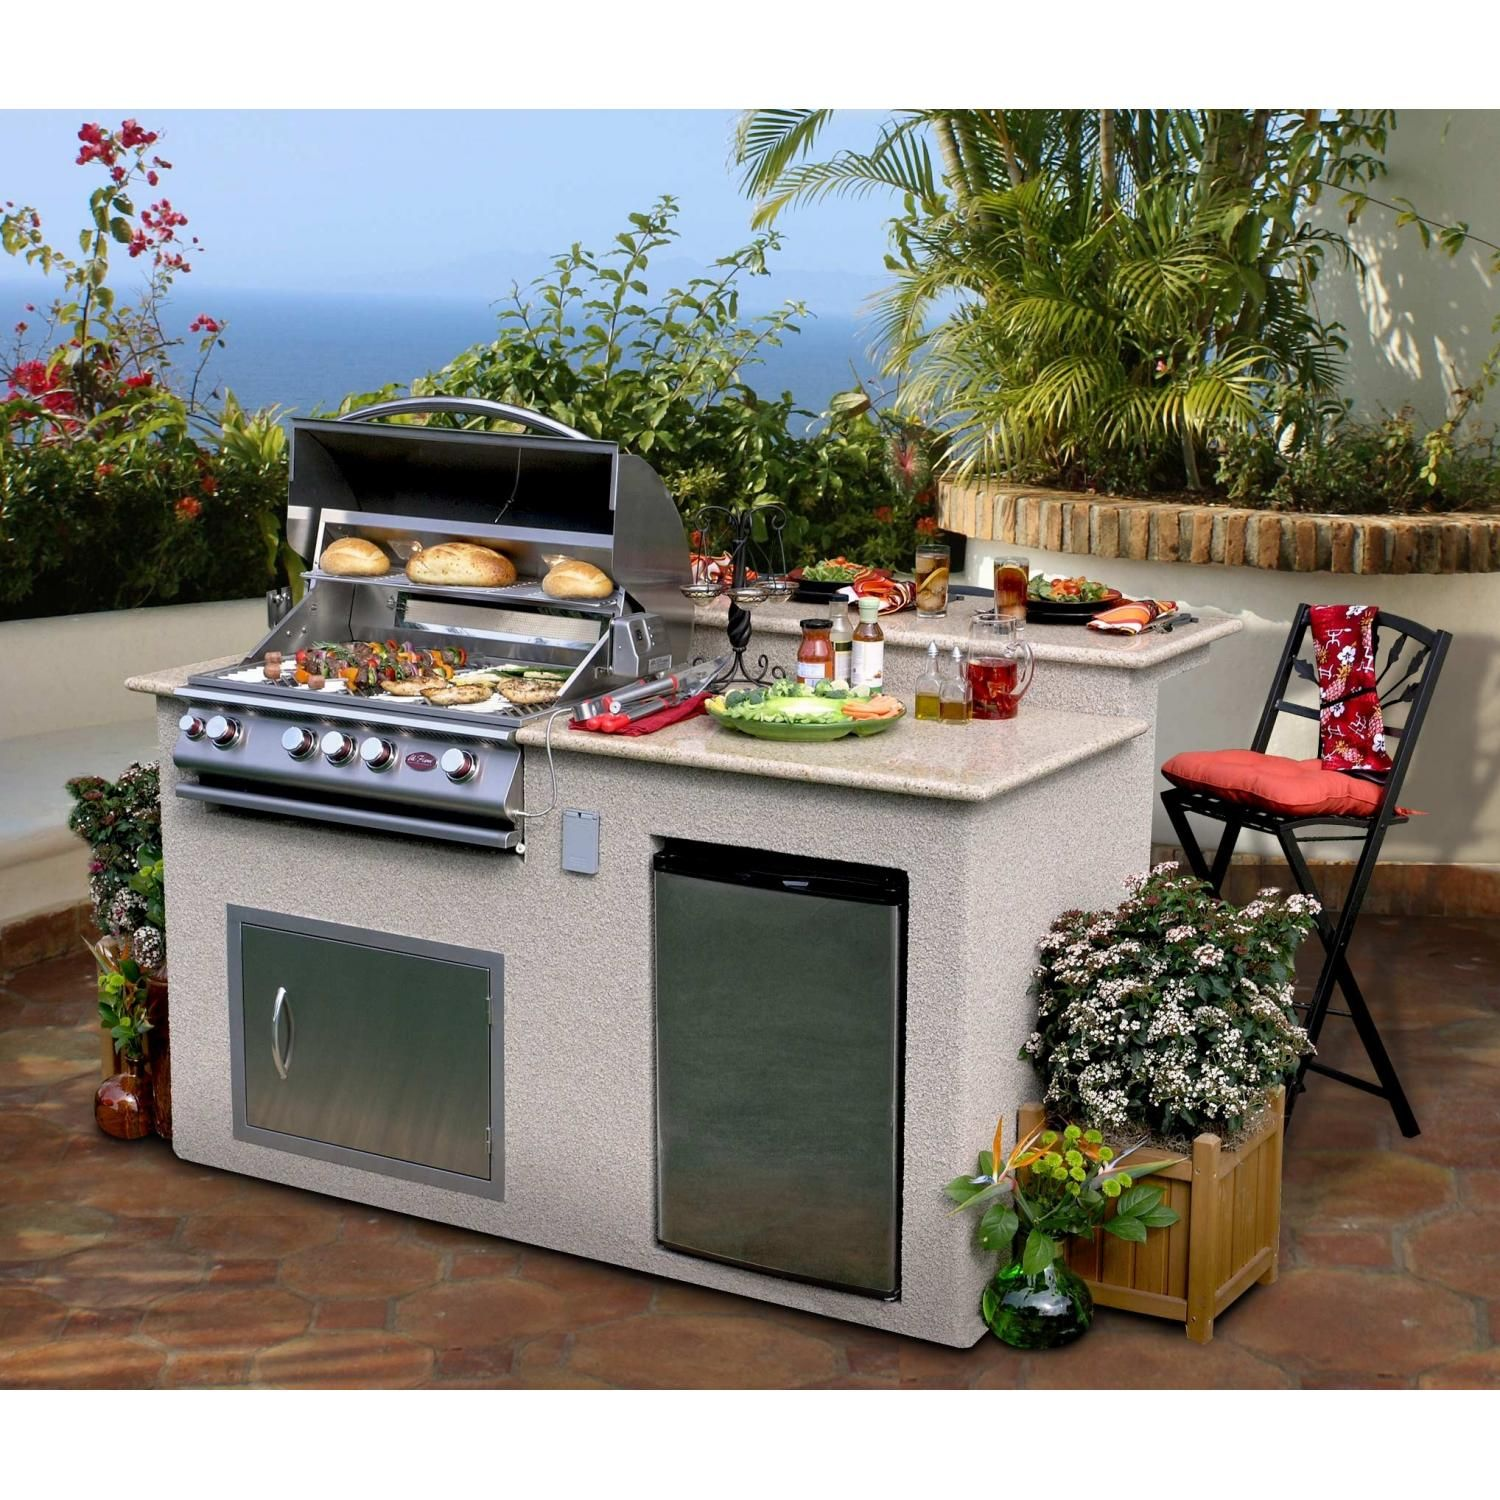 Flame BBQ Island With 32-Inch Cal Flame Natural Gas BBQ Grill